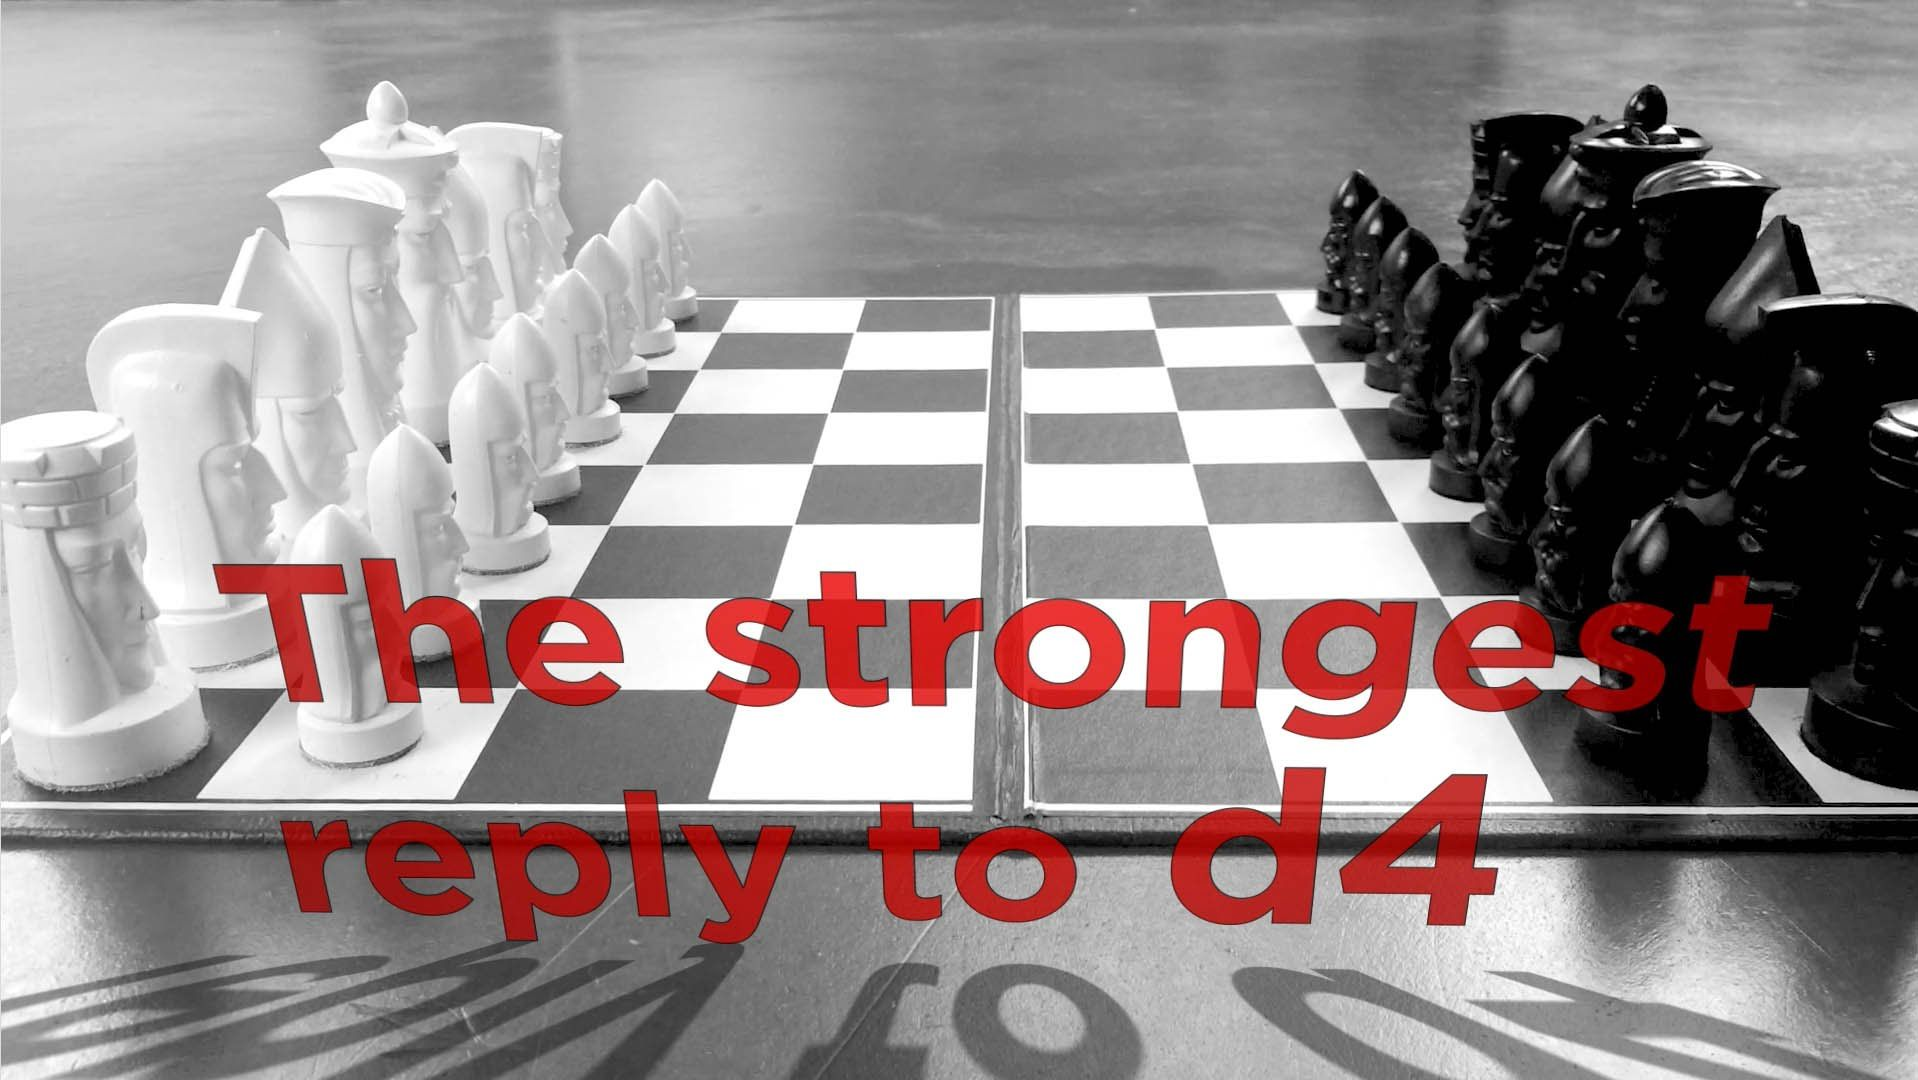 The Strongest Reply To D4